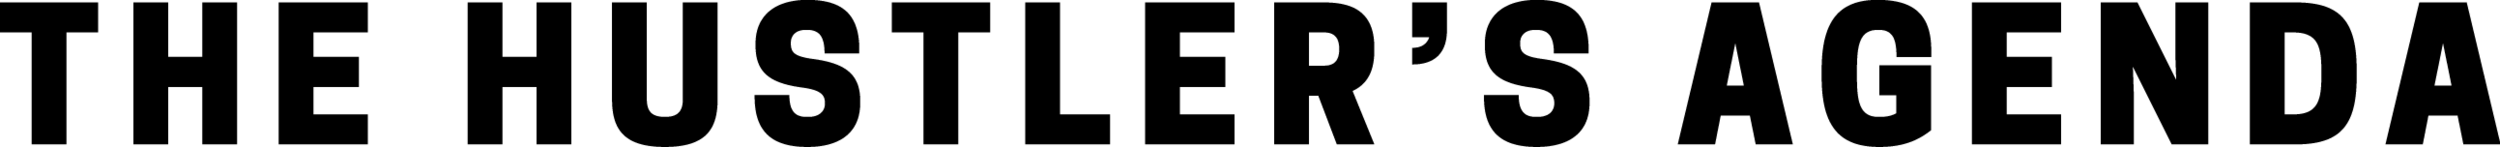 HA-wordlogo-black.png